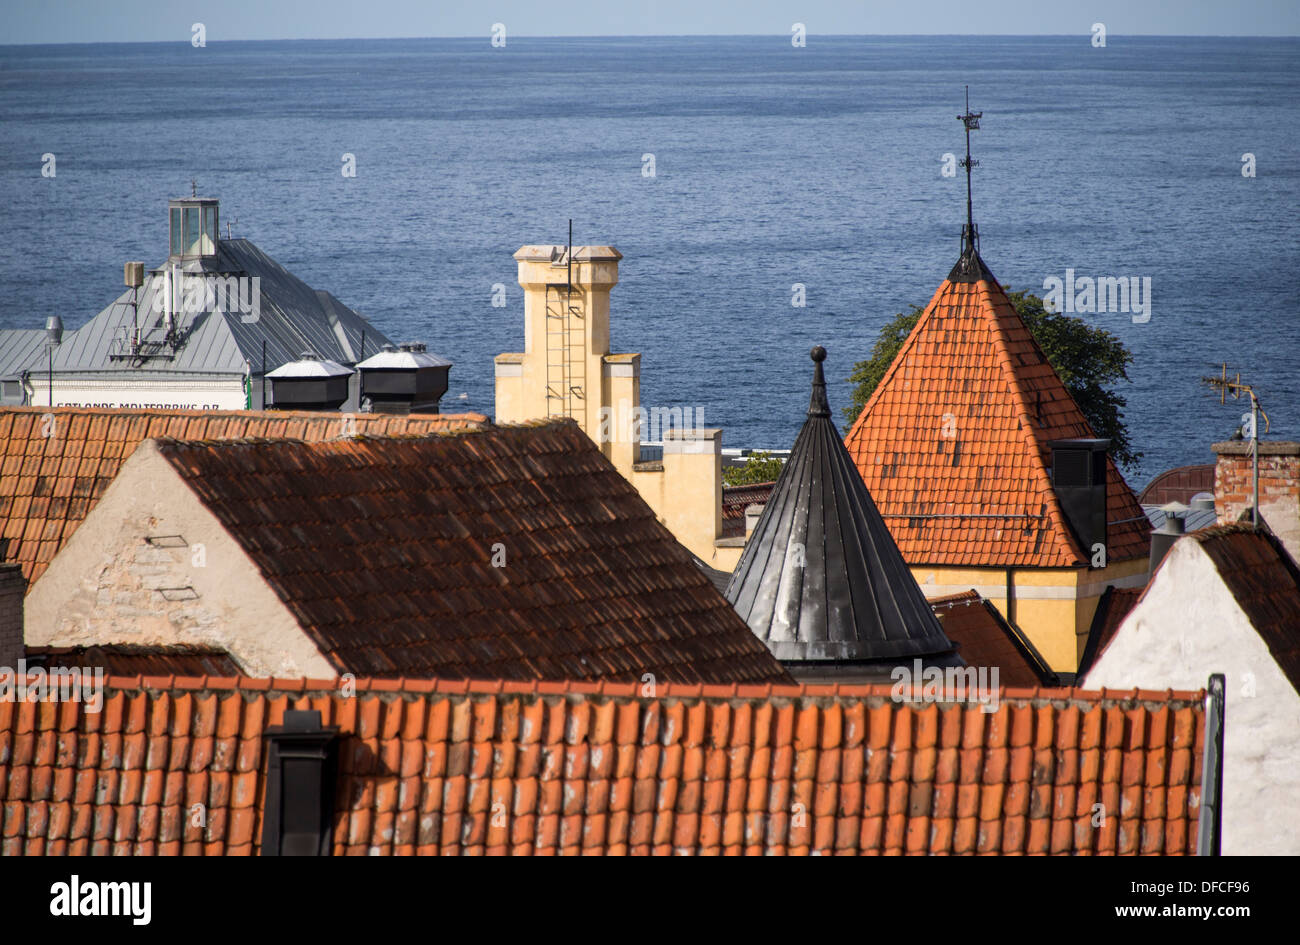 View over Hanseatic town of Visby overlooking the harbor on the Swedish island of Gotland int the Balic Sea - Stock Image